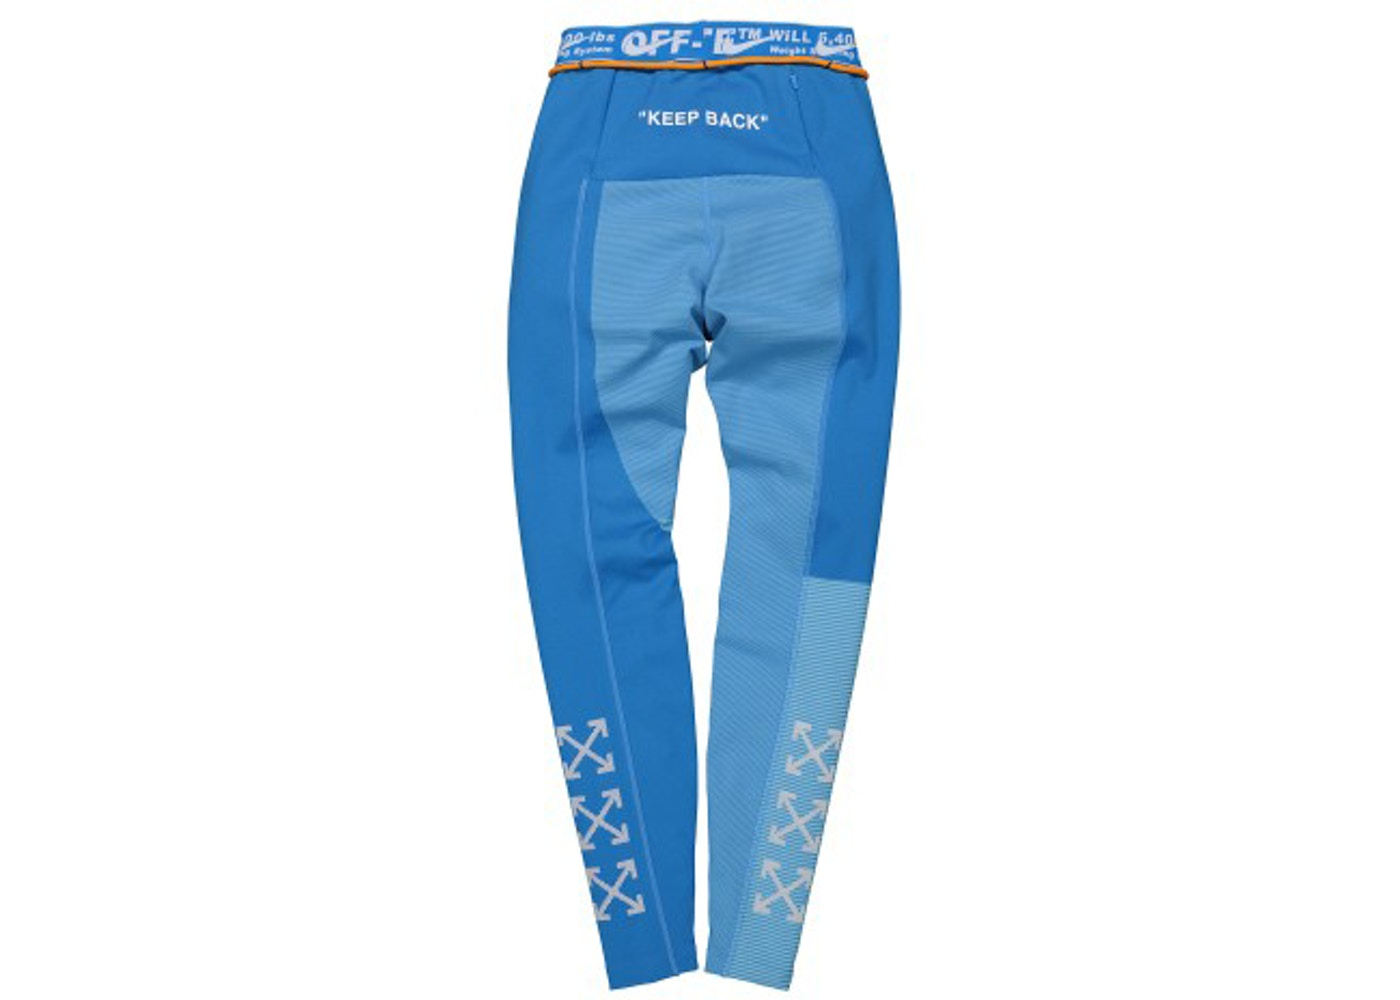 0c6bca1f6 OFF-WHITE x Nike Women's Easy Run Tight Photo Blue